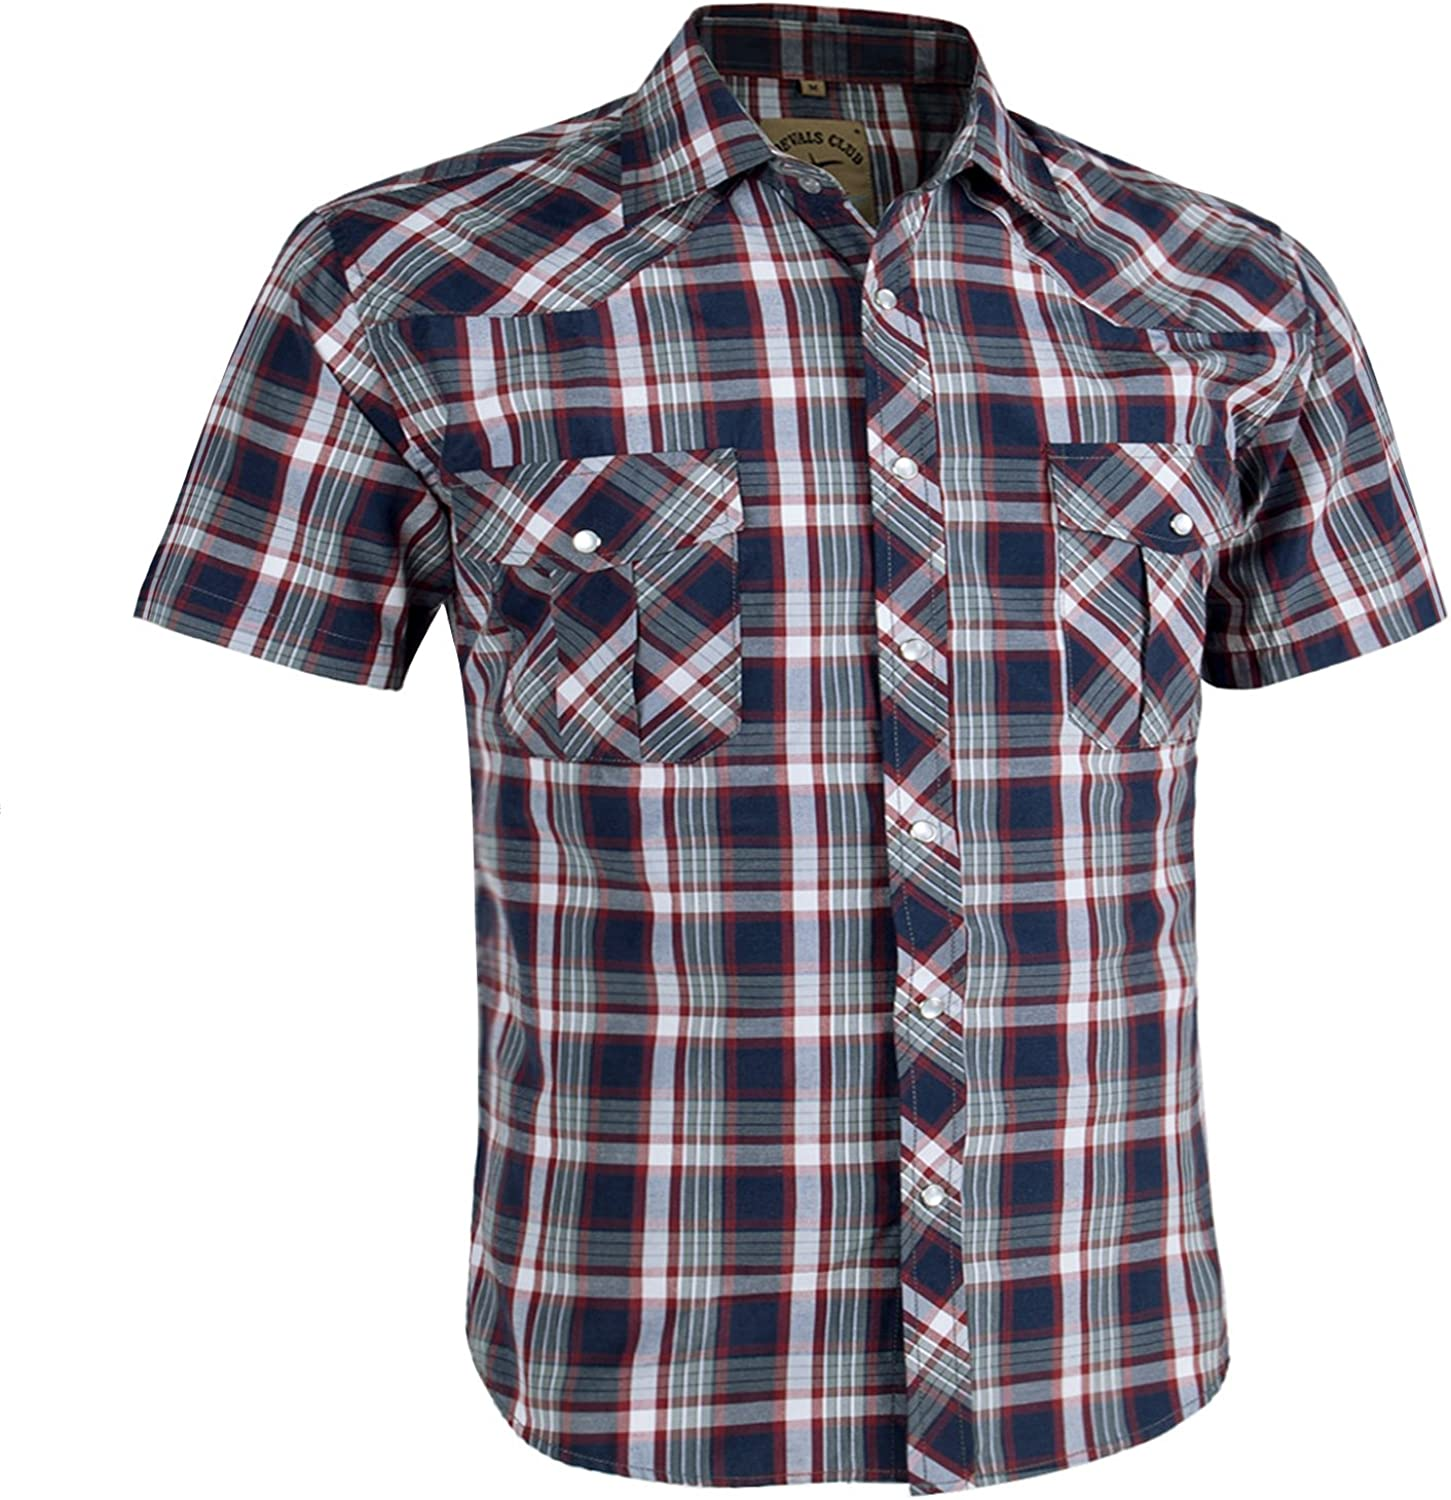 Coevals Club Men's Casual Plaid Pearl Button Snap Front Short Sleeve Shirt Regular Fit (Red/Gray #3, 2XL)